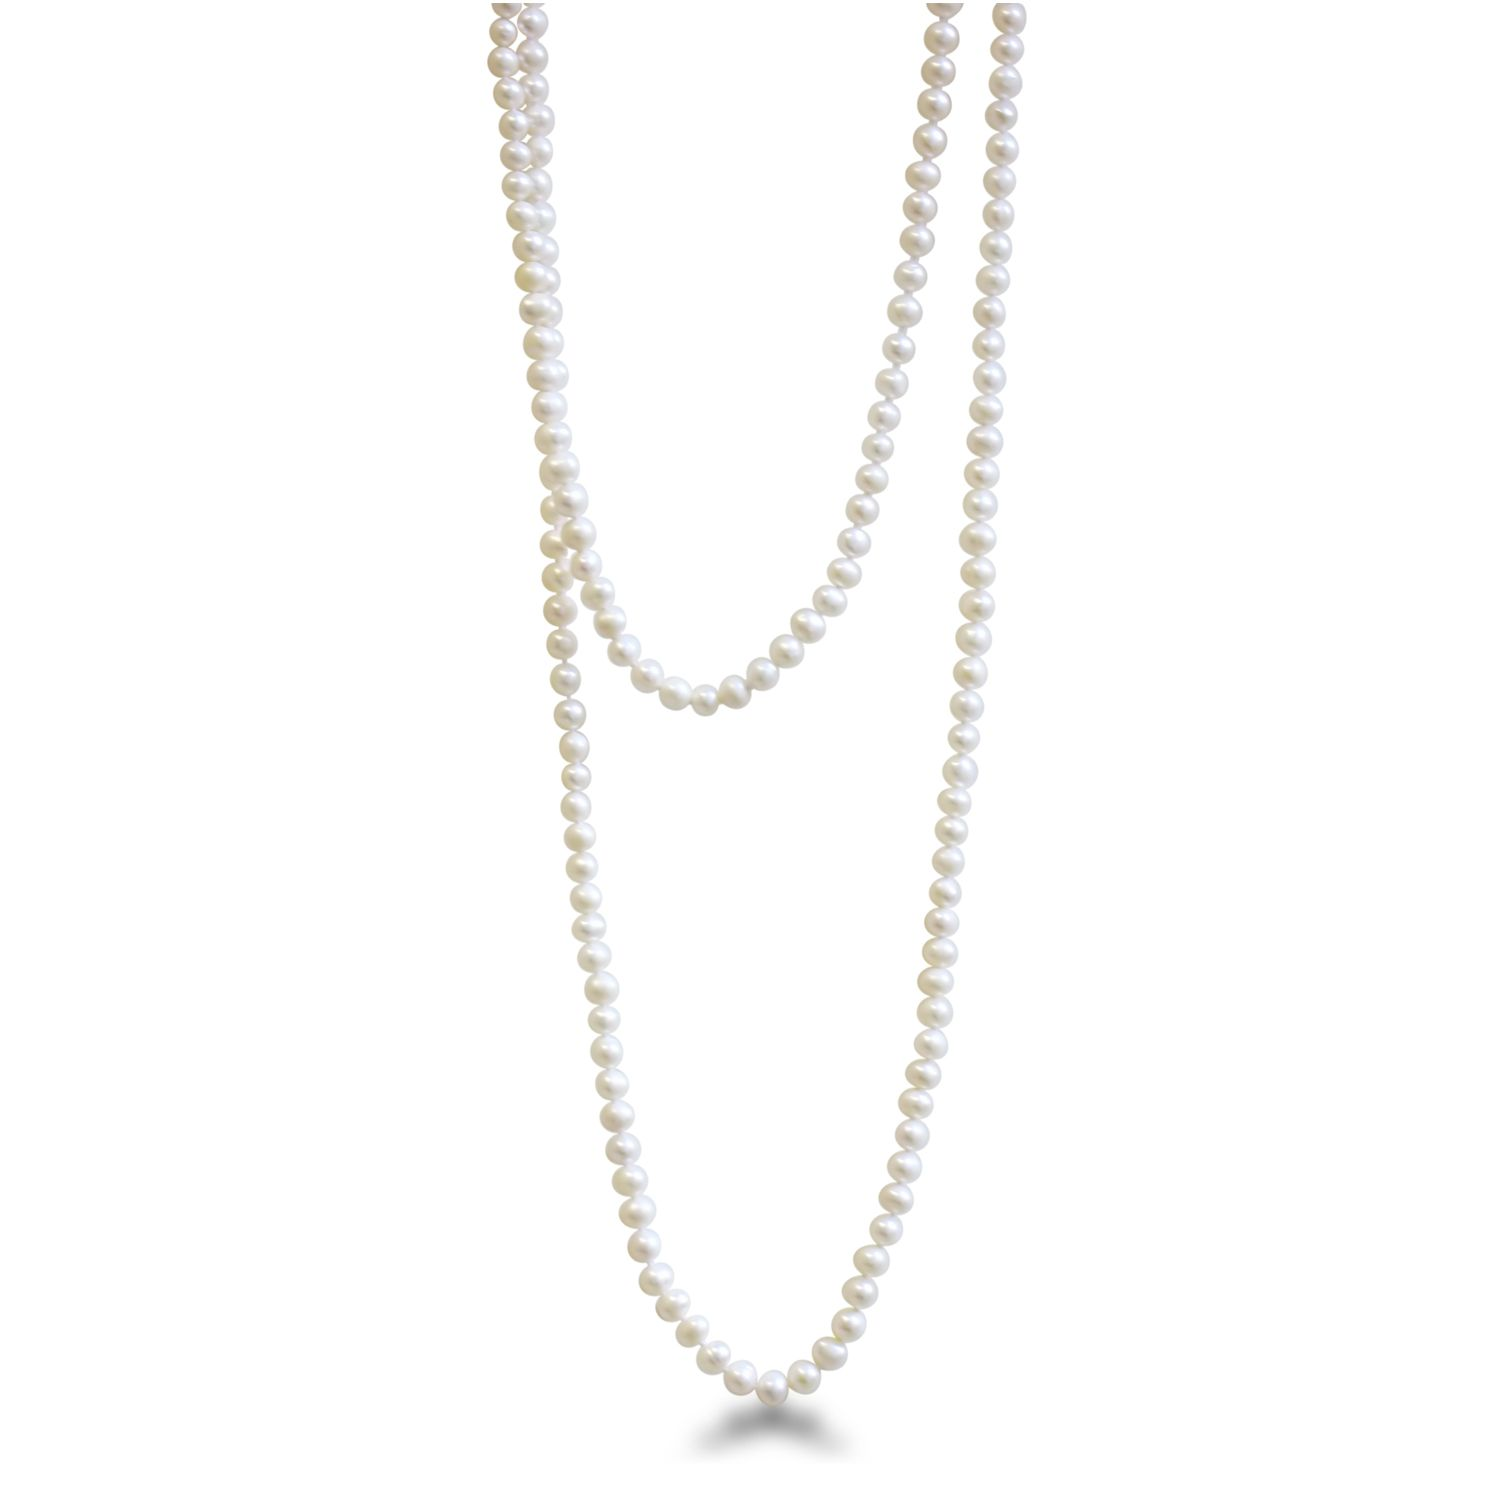 Breakfast At Tiffany's Pearl Necklace - $35.99. https://www.bellechic.com/deals/fa096066528d/breakfast-at-tiffany-s-pearl-necklace